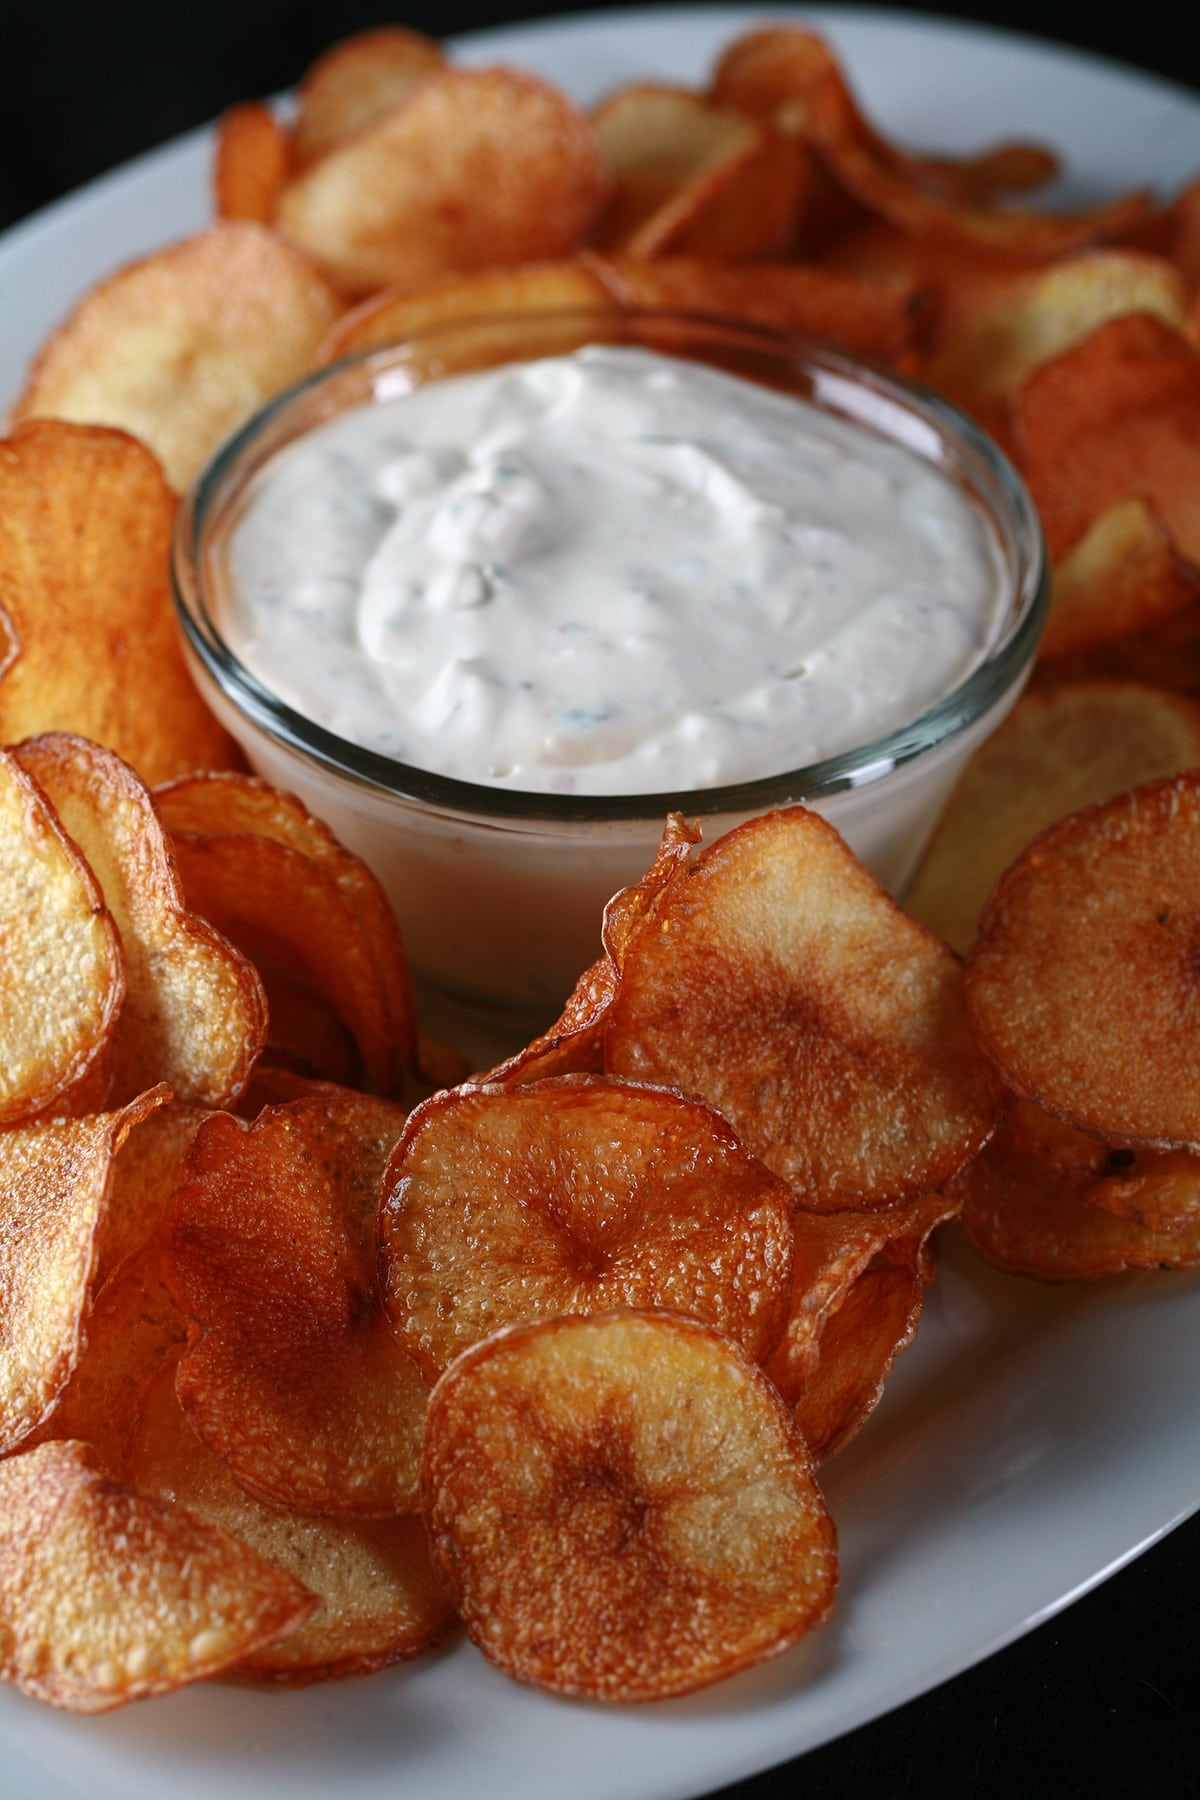 A large platter of fried potato slices, with a bowl of cactus dip. Based on a Boston Pizza appetizer.